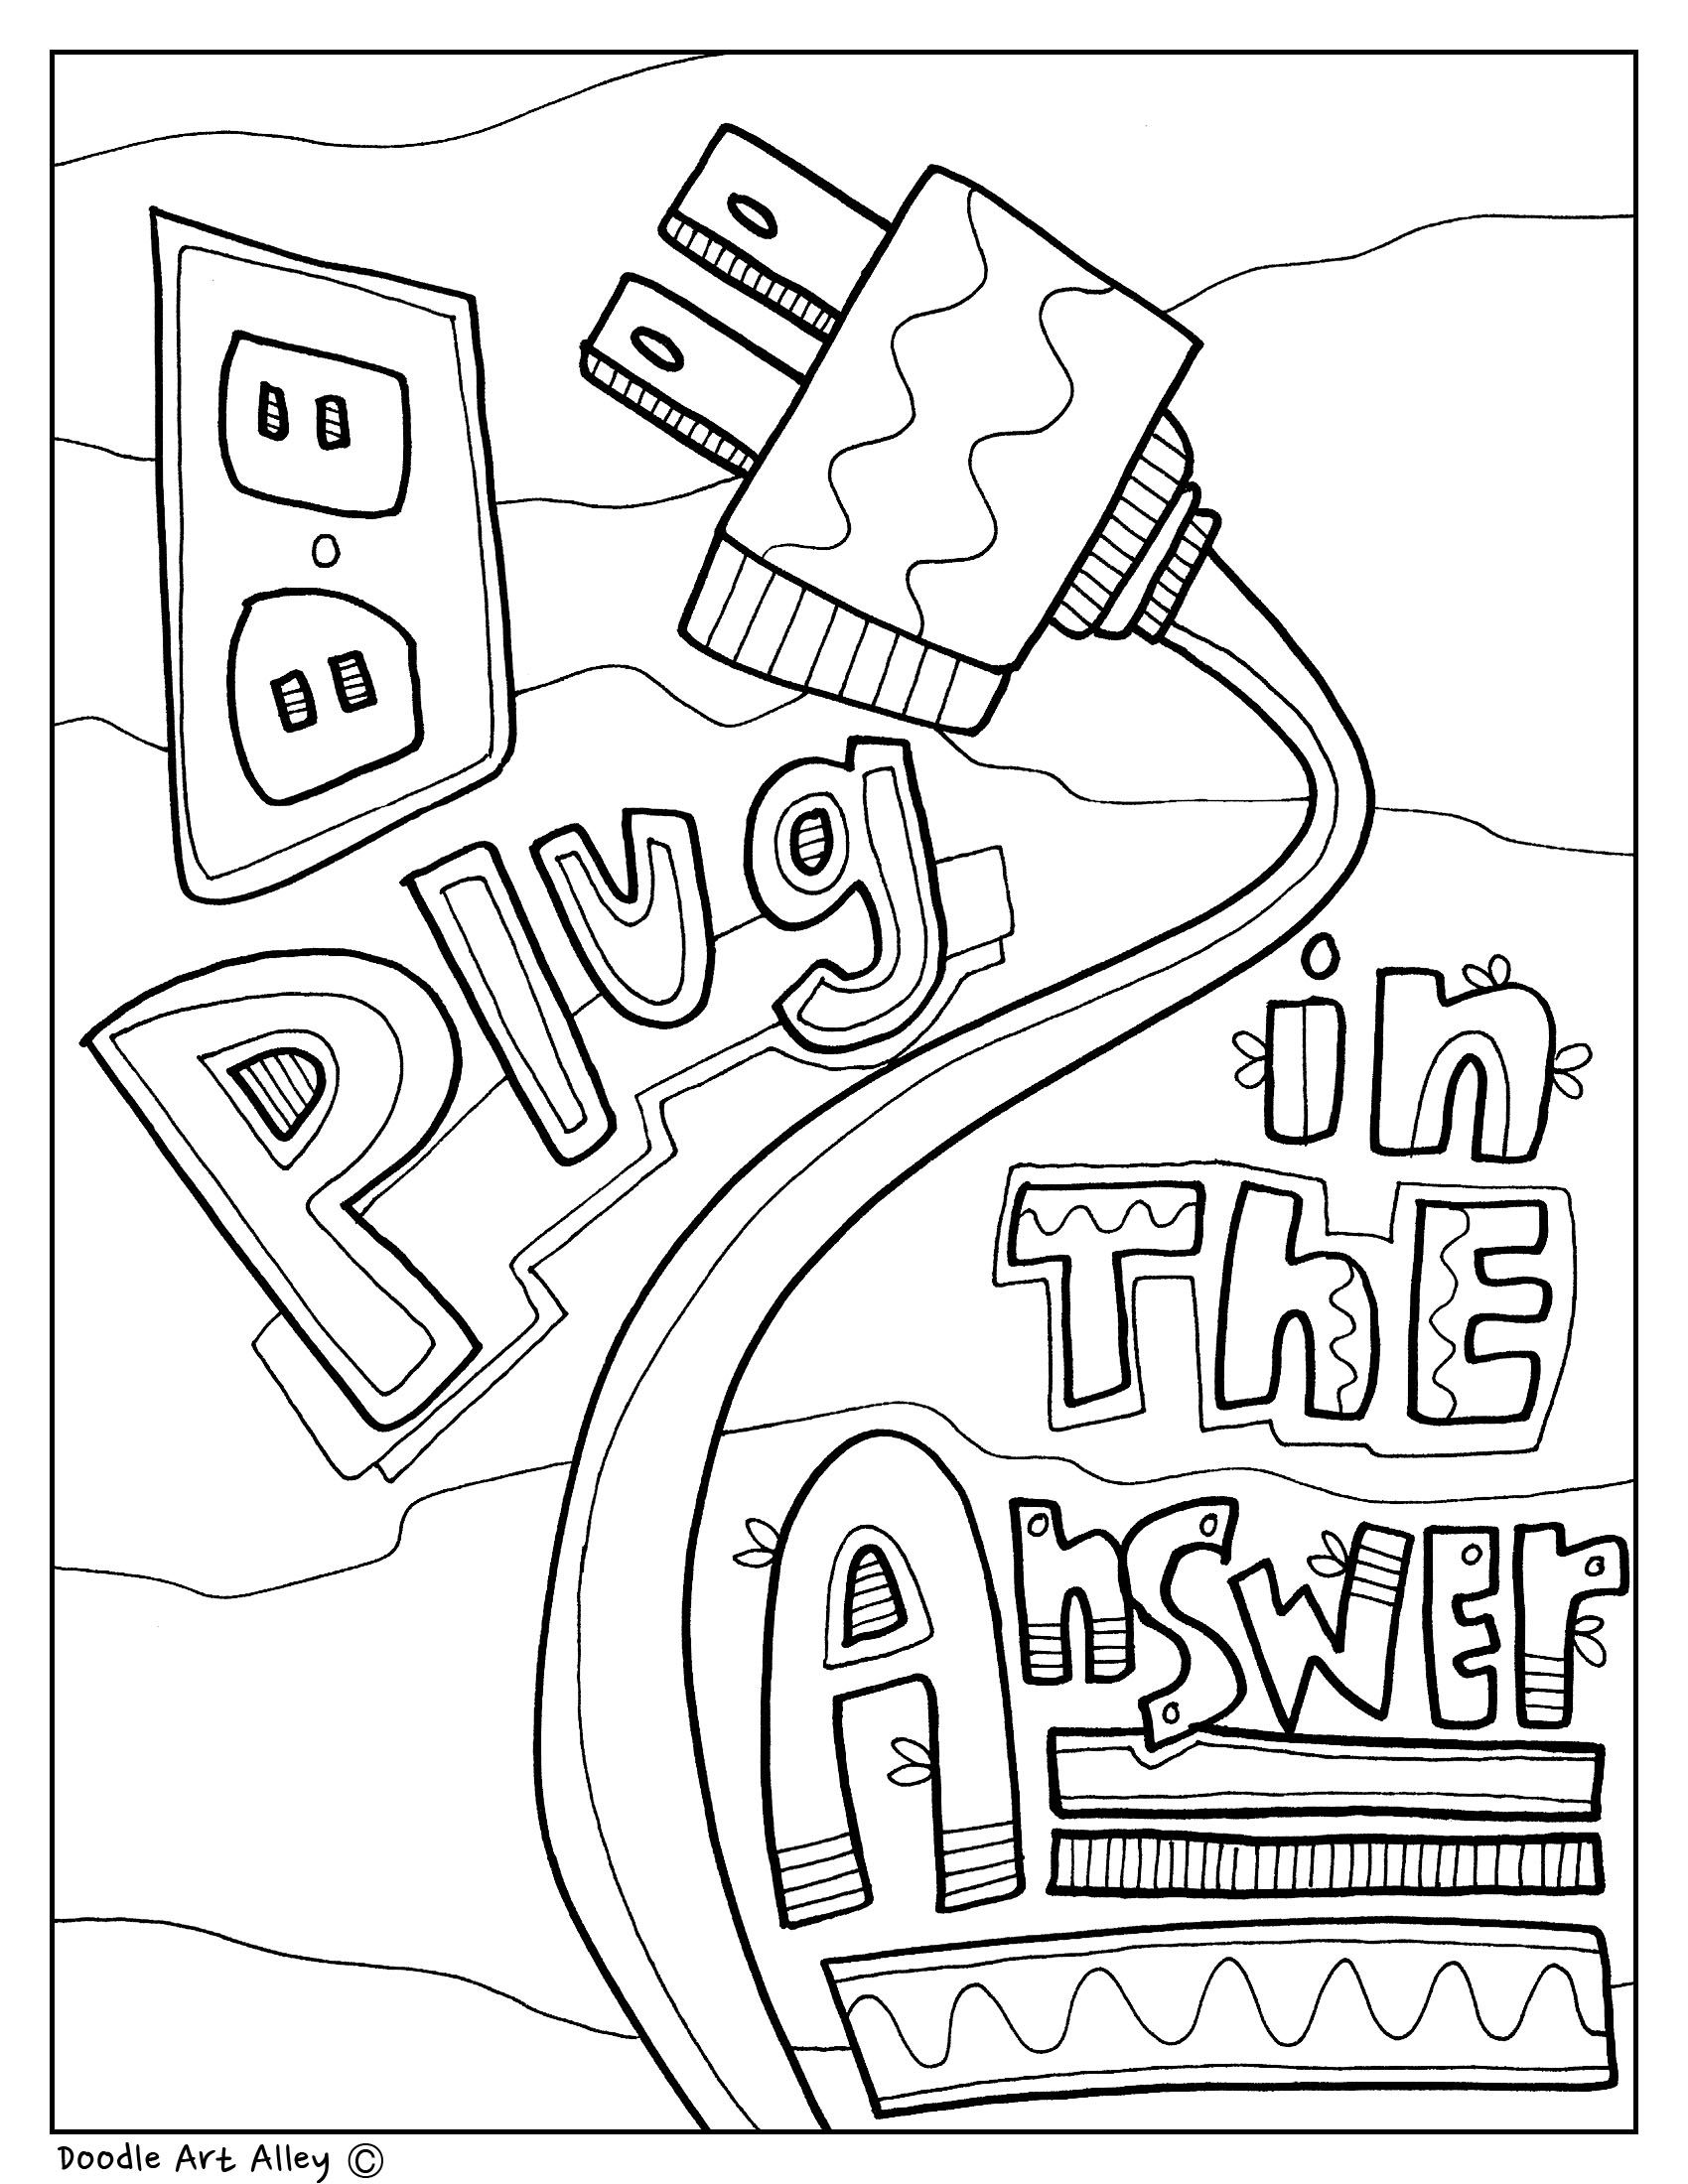 Testing Strategies Testing Strategy Coloring Pages At Classroom Doodles From Doodle Art Alley School Coloring Pages Teaching Schools Testing Strategies